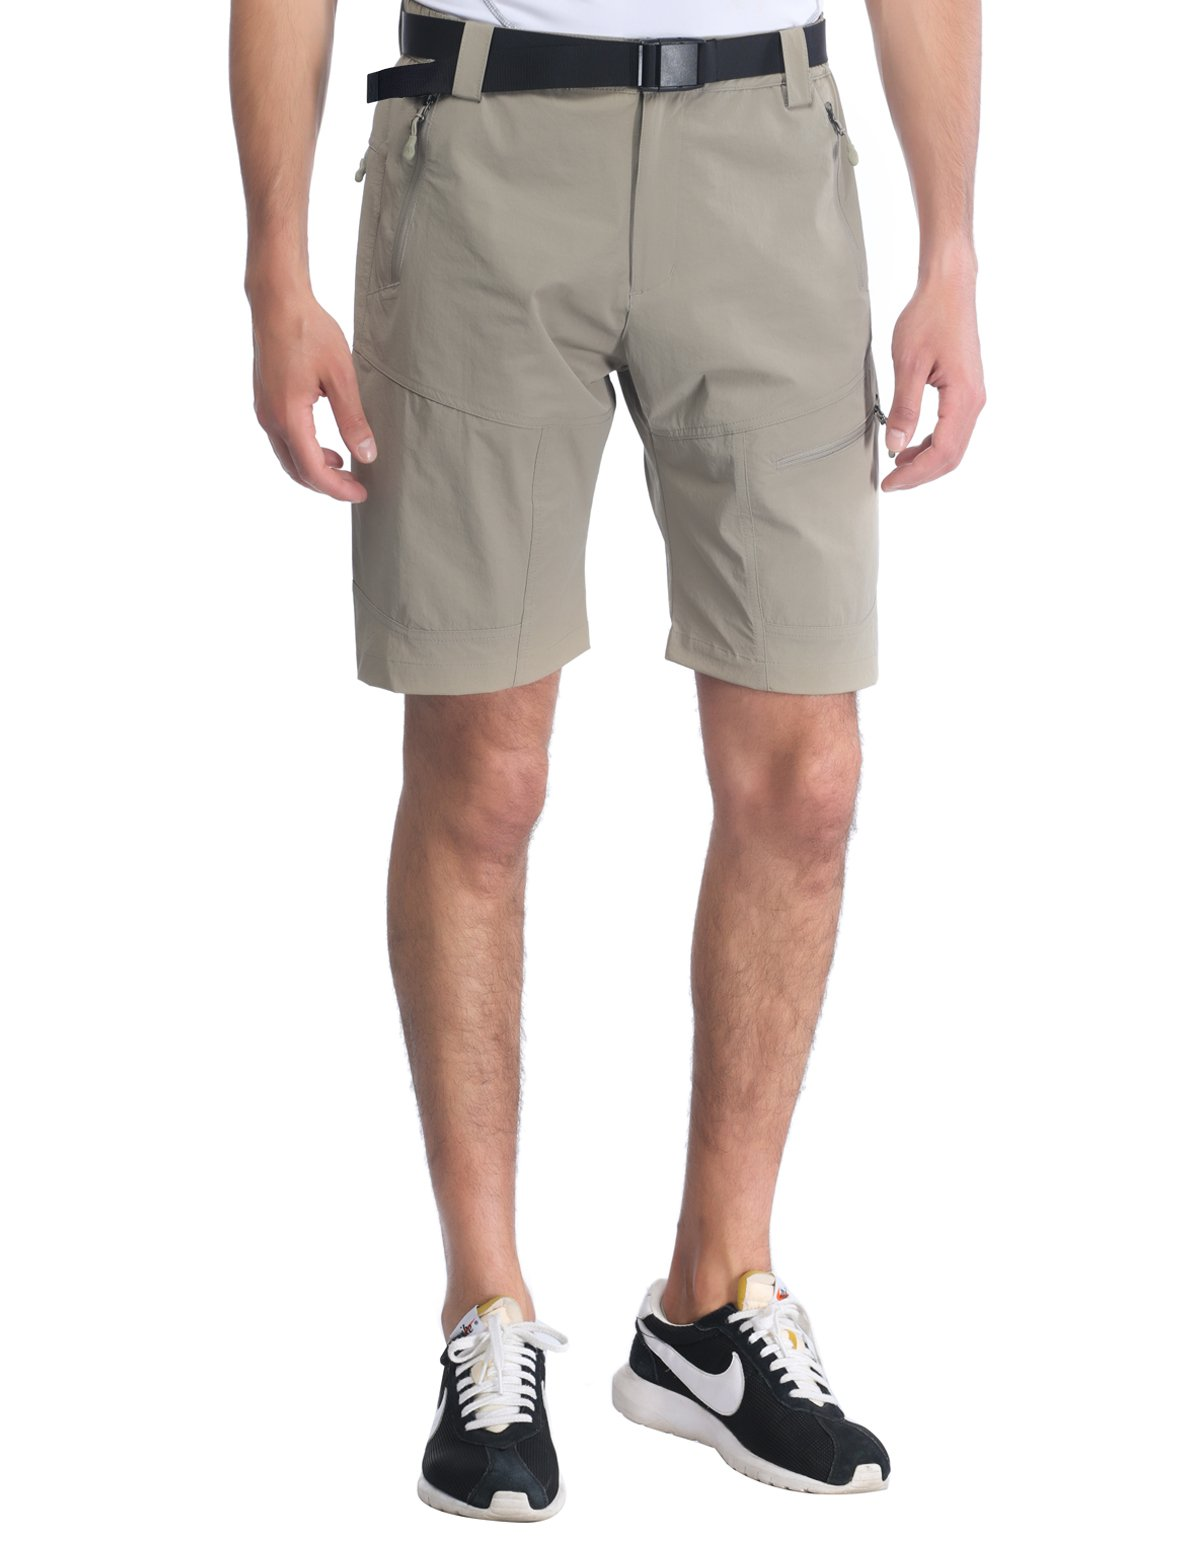 MIERSPORTS Men's Tactical Shorts Lightweight Cargo Shorts with 5 Zipper Pockets, Quick Dry, Water Resistant, Rock Gray, XL